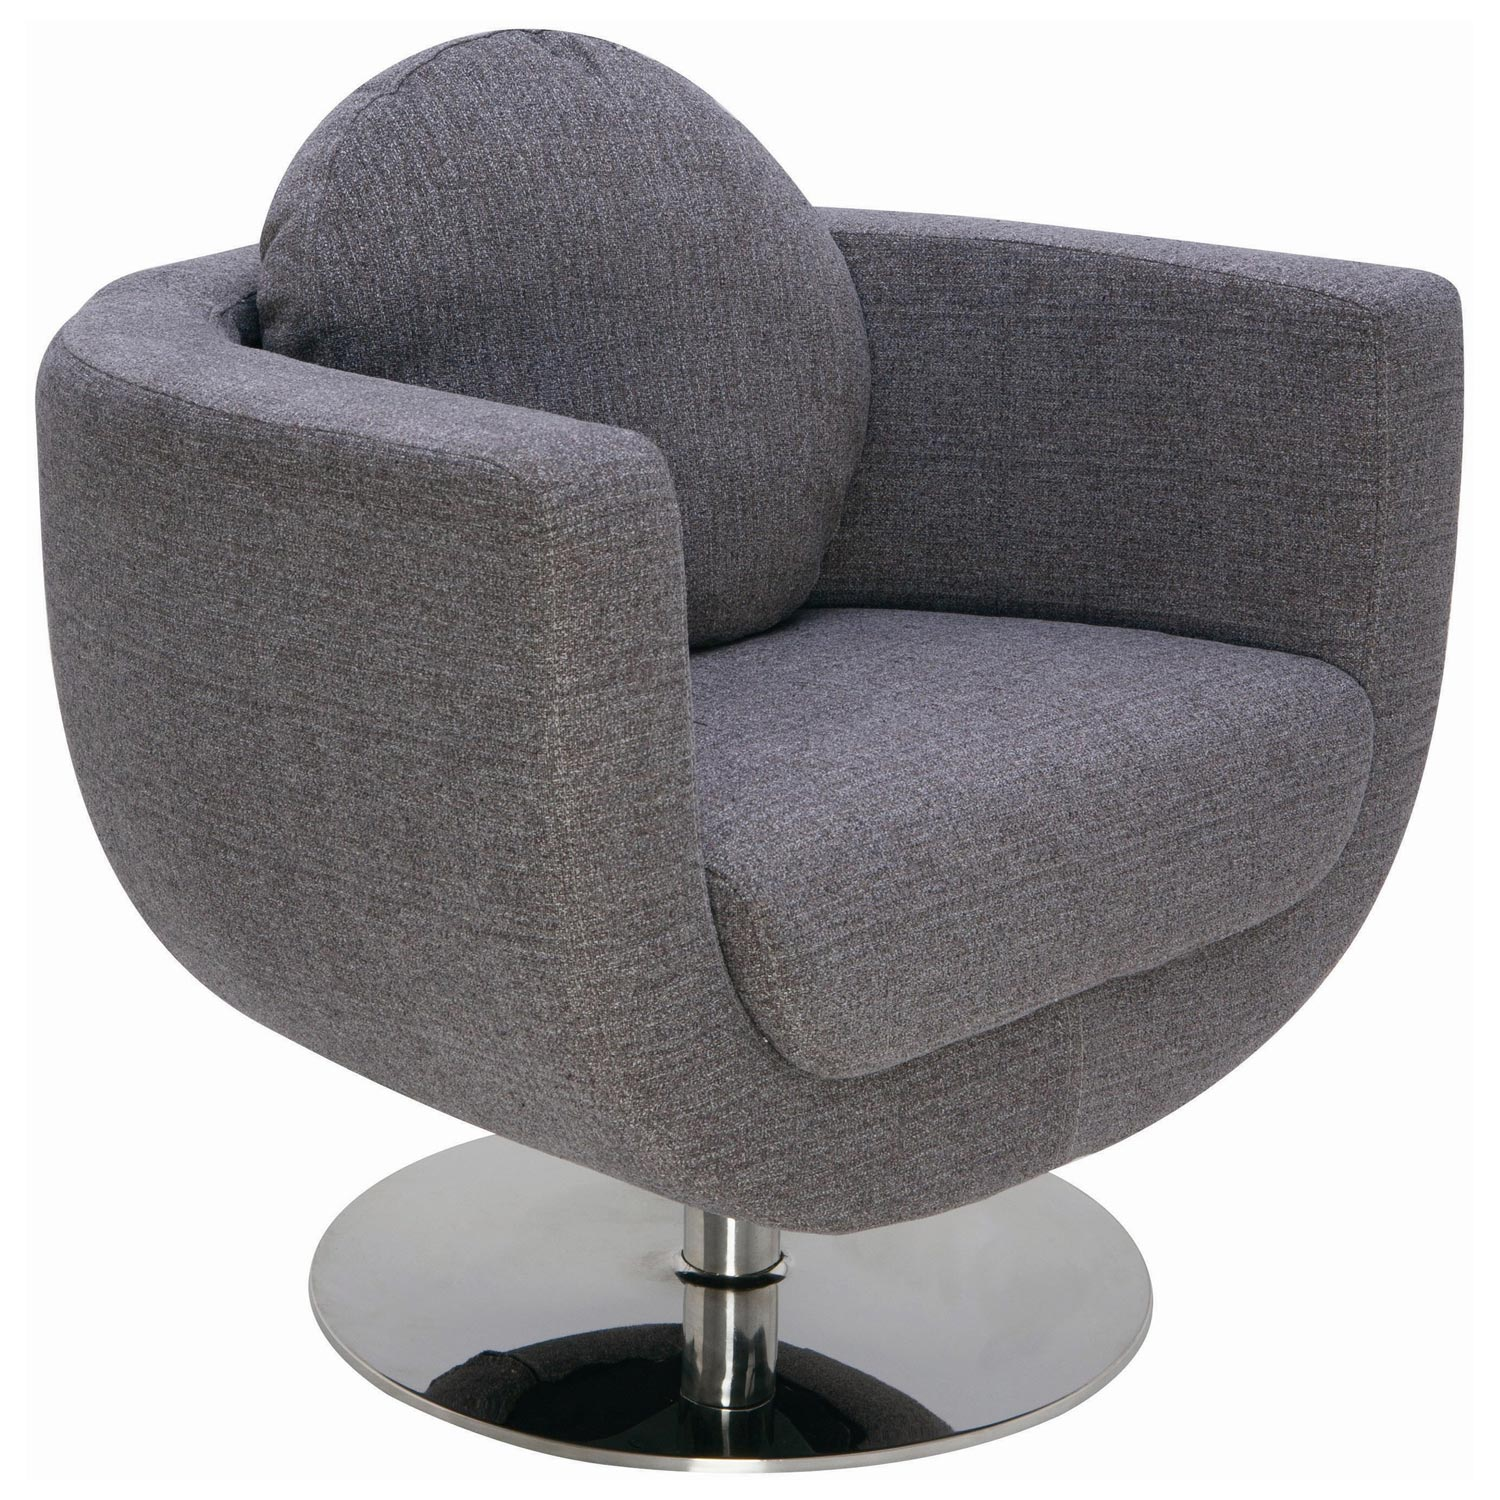 swivel lounge chairs best office chair for long hours reddit simone dcg stores nvo hgdj1xx occ